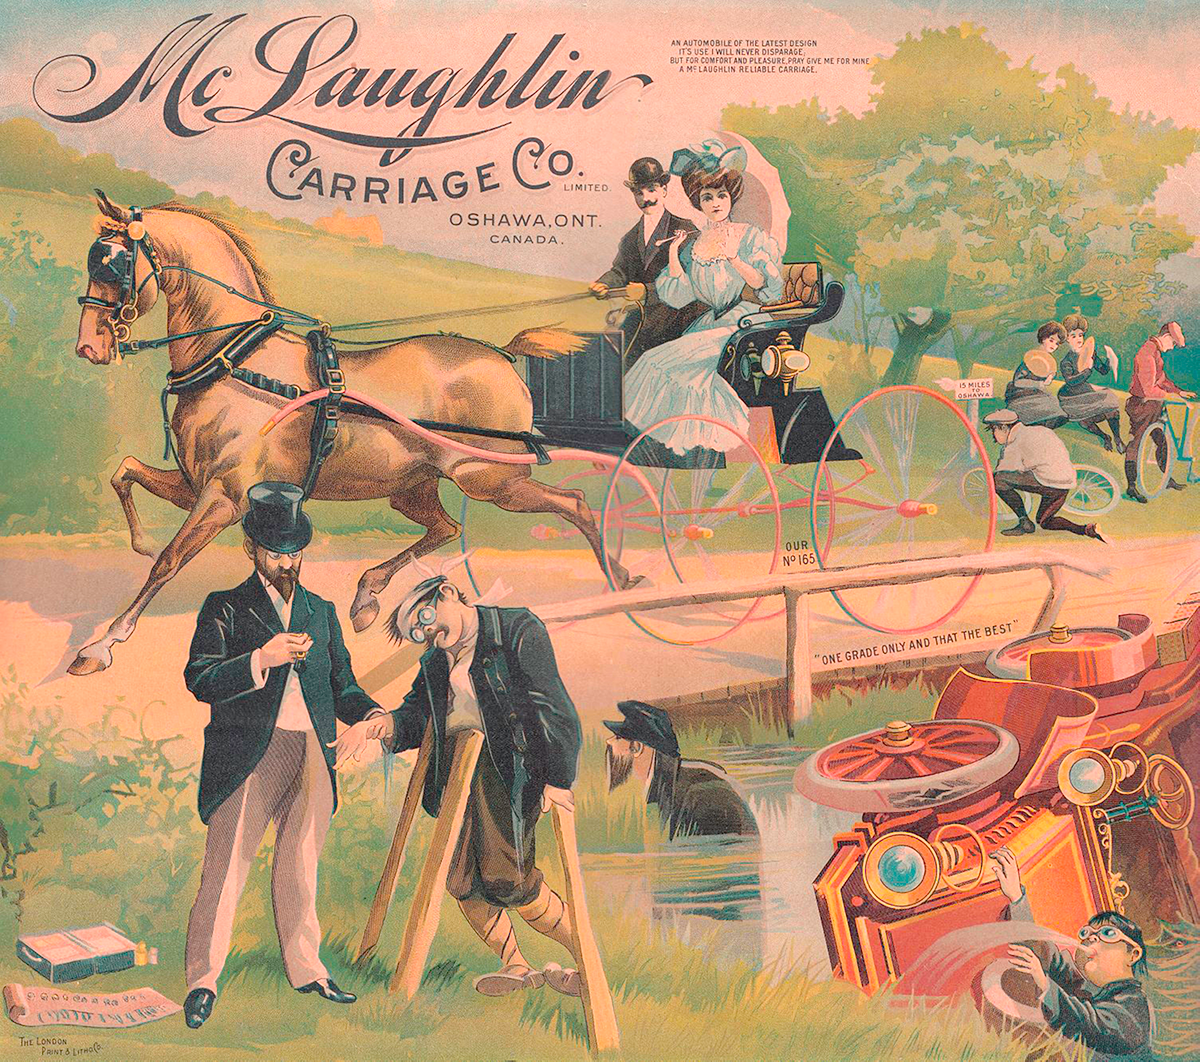 An illustration from the 1906 McLaughlin Carriage Company calendar shows a car tipped over in a stream while a carriage cruises by